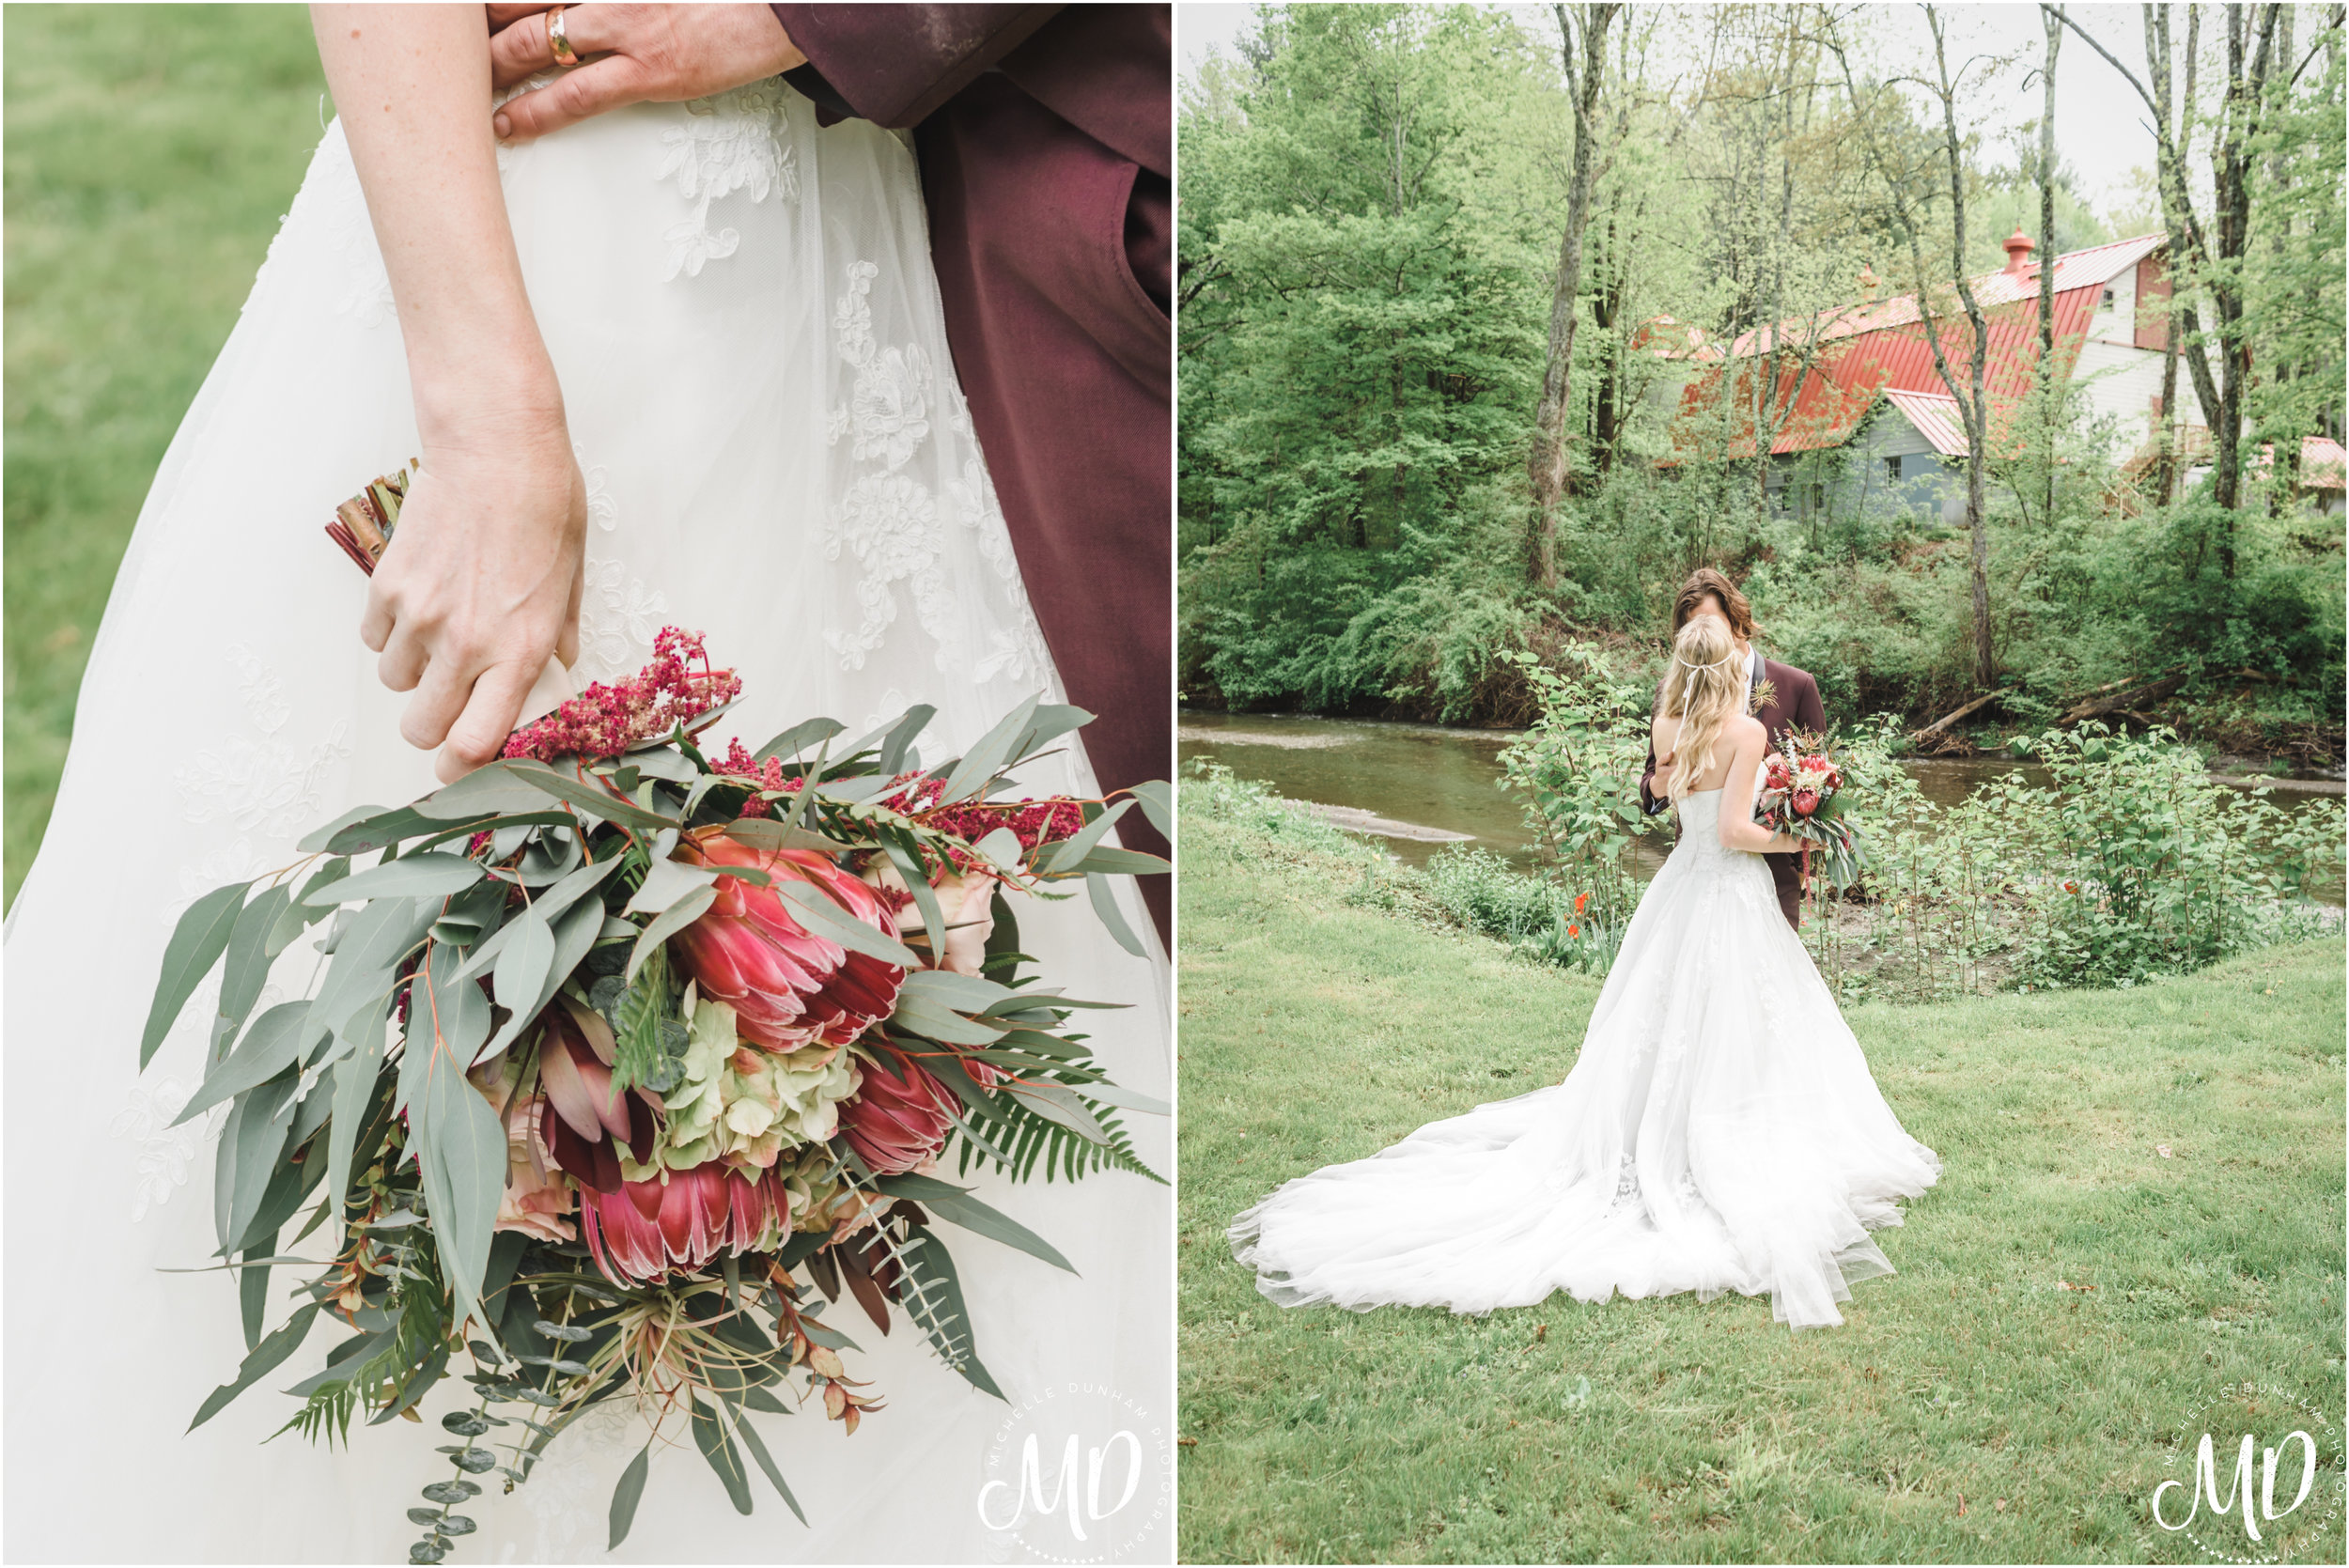 Michelle Dunham Photography_Boho_BrideandGroom_3.jpg